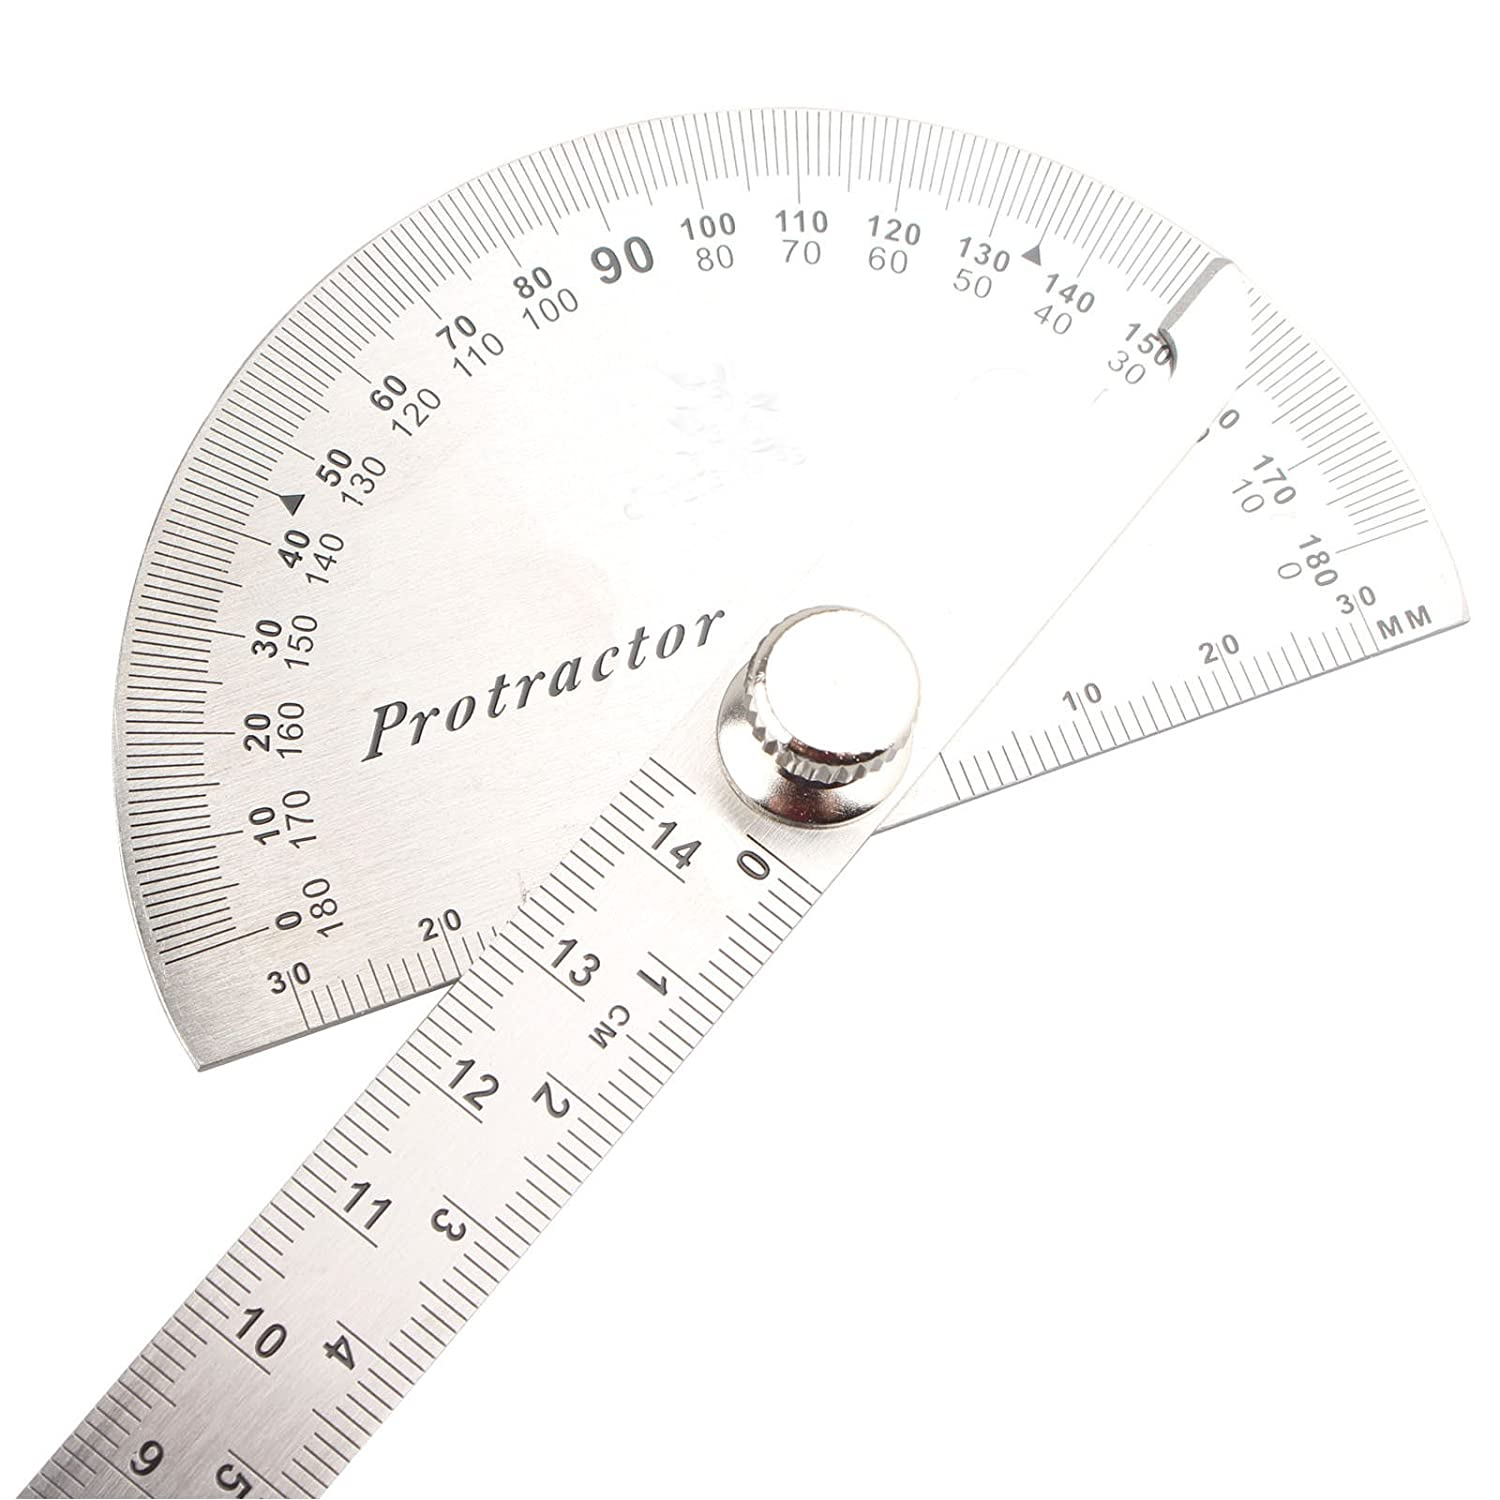 Stainless Steel Protractor Ruler 0 to 180 Degree Metric Rotary Measuring Angle Ruler for Carpenter Woodworking Tool Painting Drawing Measuring